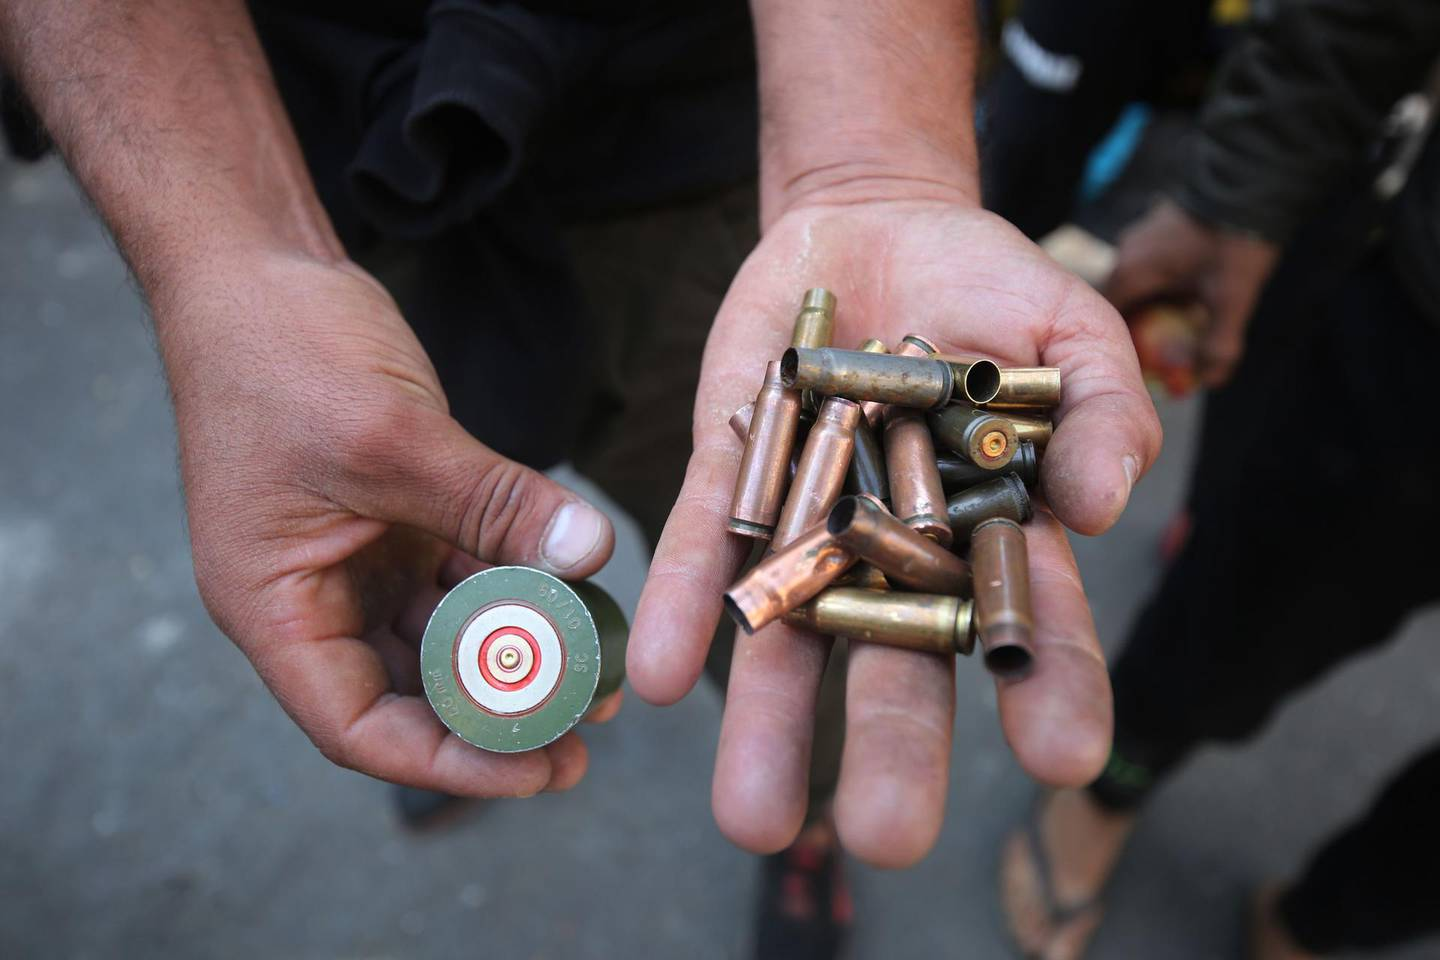 Iraqi anti-government protesters display spent bullet casings during clashes with security forces in al-Rasheed street near al-Ahrar bridge on November 22, 2019. Three anti-government protesters were killed in Iraq's capital, a medical source said, in clashes between defiant demonstrators and security forces trying to keep them back from state offices.  More than 340 people have died and thousands have been wounded since rallies against widespread graft and unemployment erupted in Baghdad and the mostly-Shiite south last month.  / AFP / AHMAD AL-RUBAYE